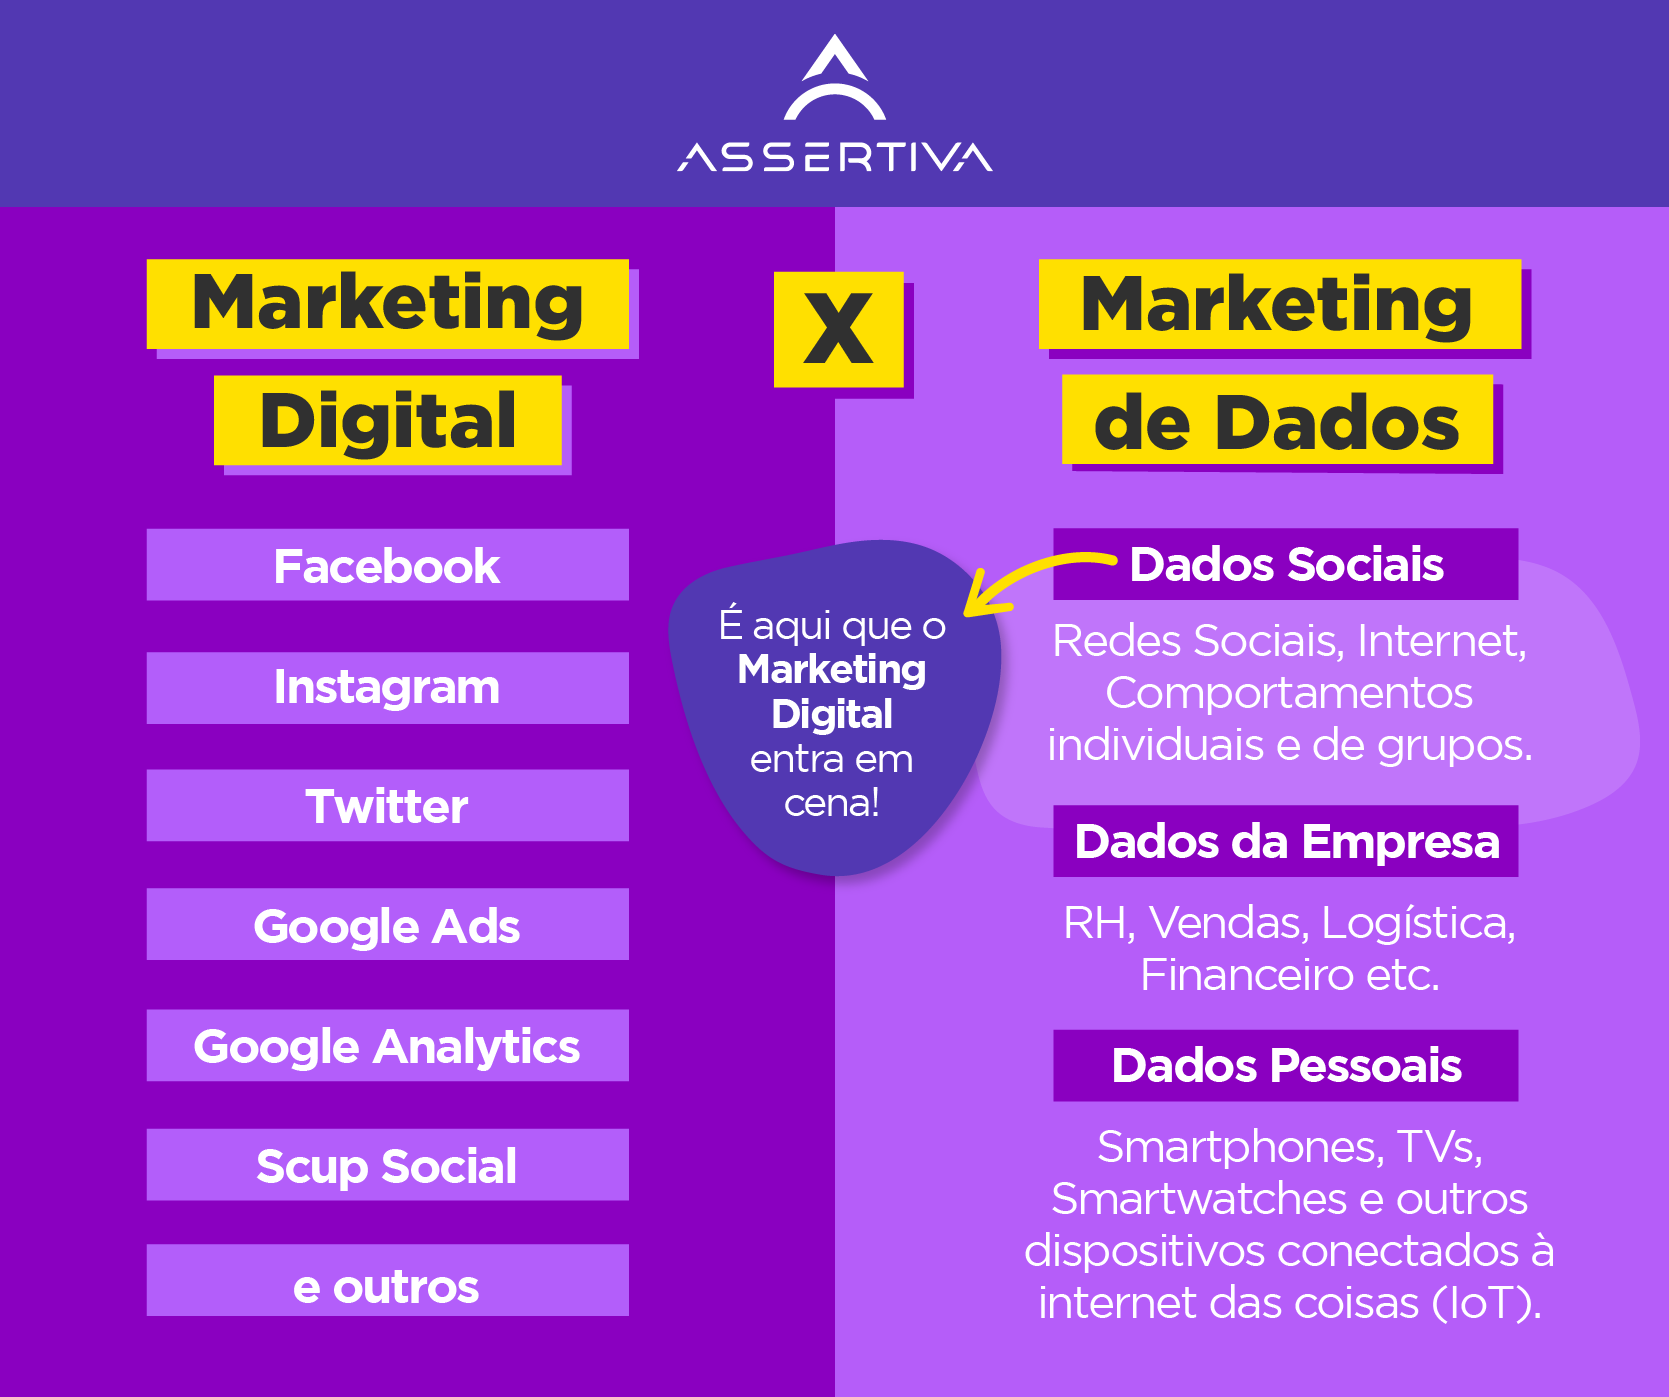 Infográfico explicando a diferença entre o marketing digital e o marketing de dados.